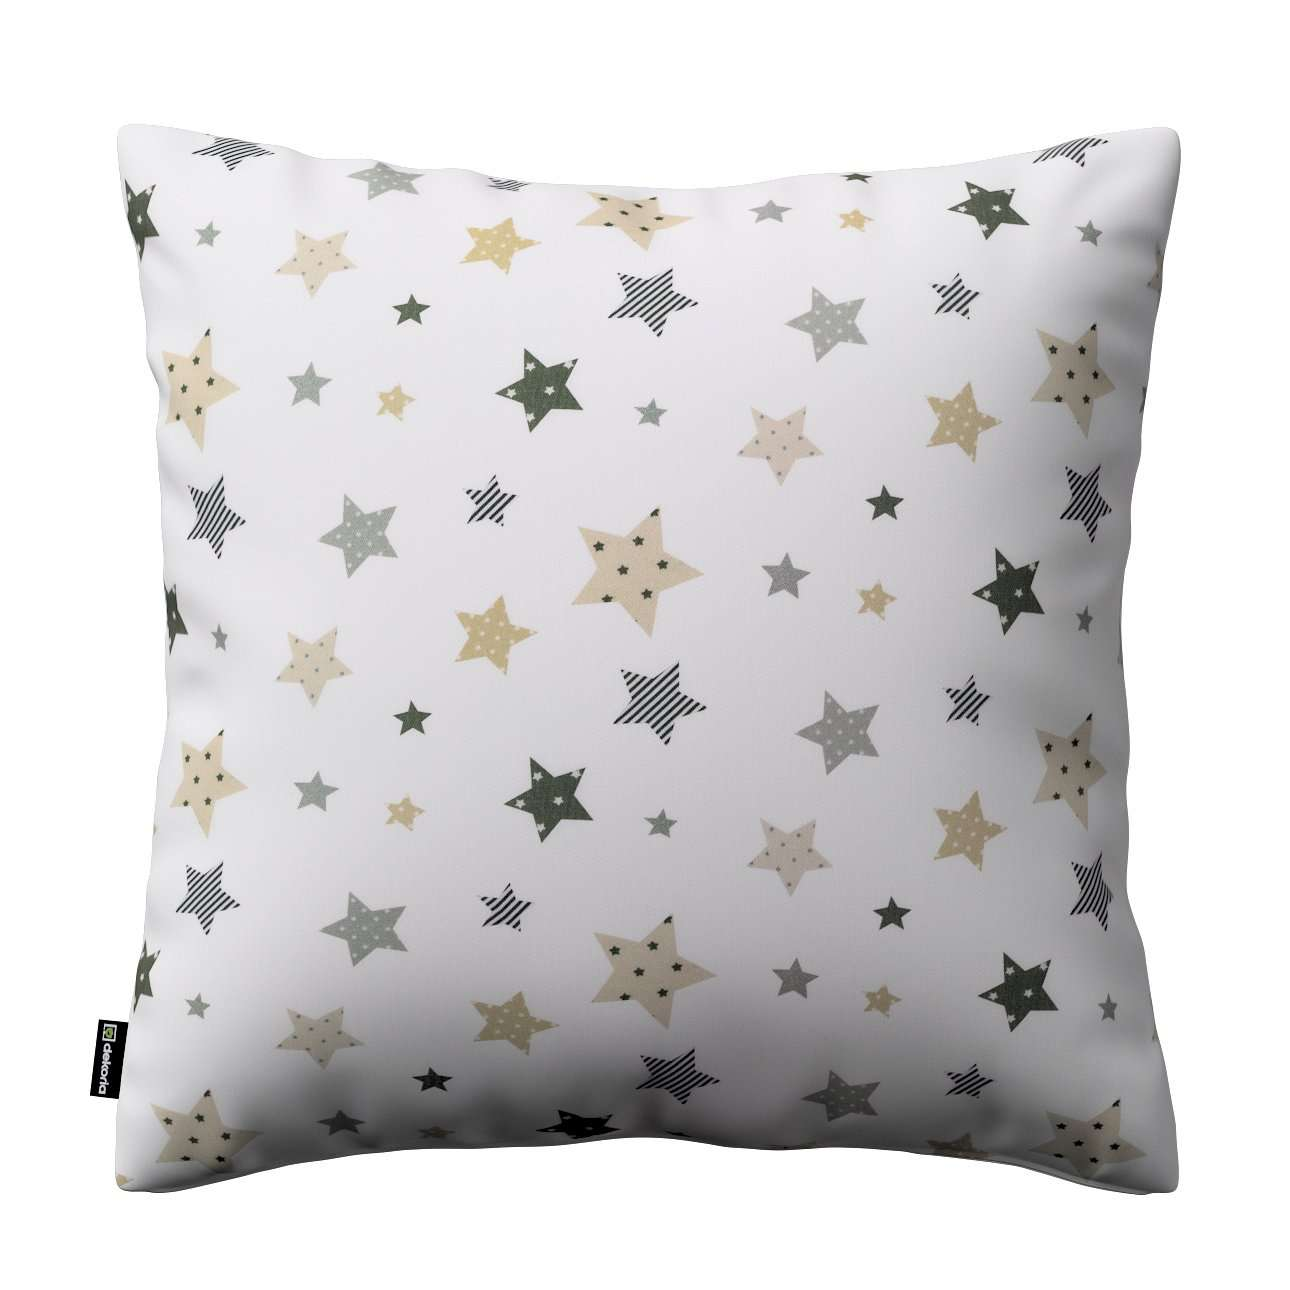 Kinga cushion cover in collection Adventure, fabric: 141-86